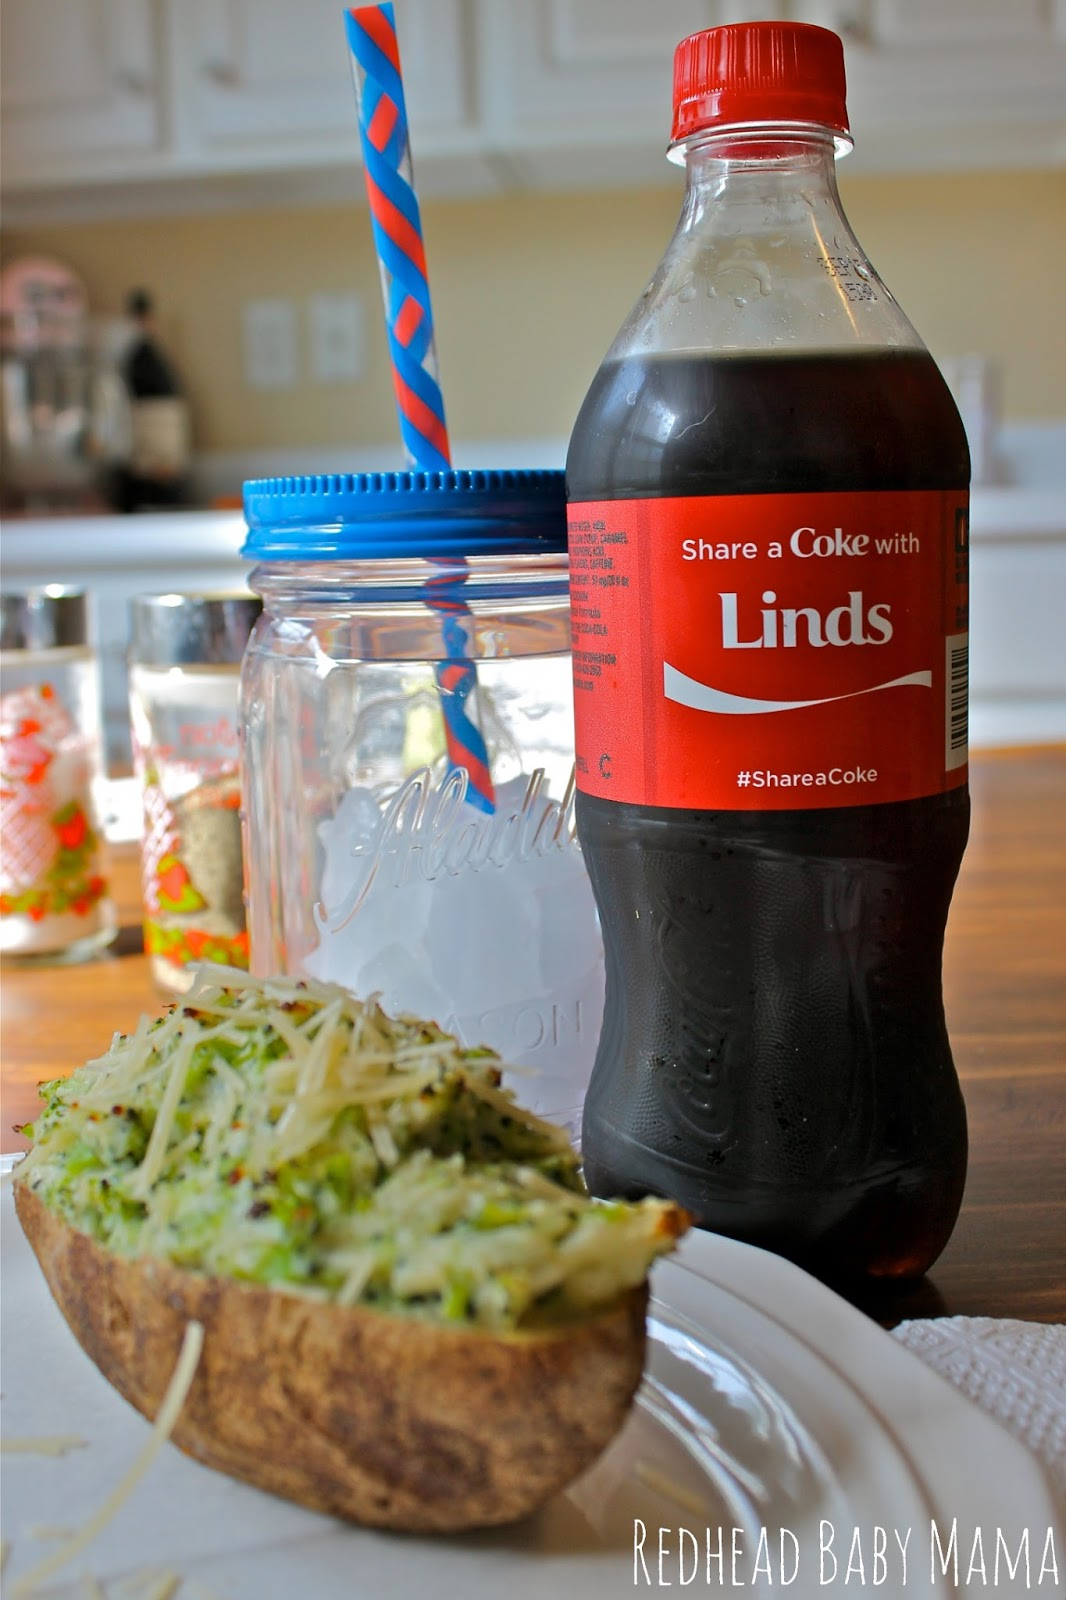 Share a Coke with Linds (Lindsey)